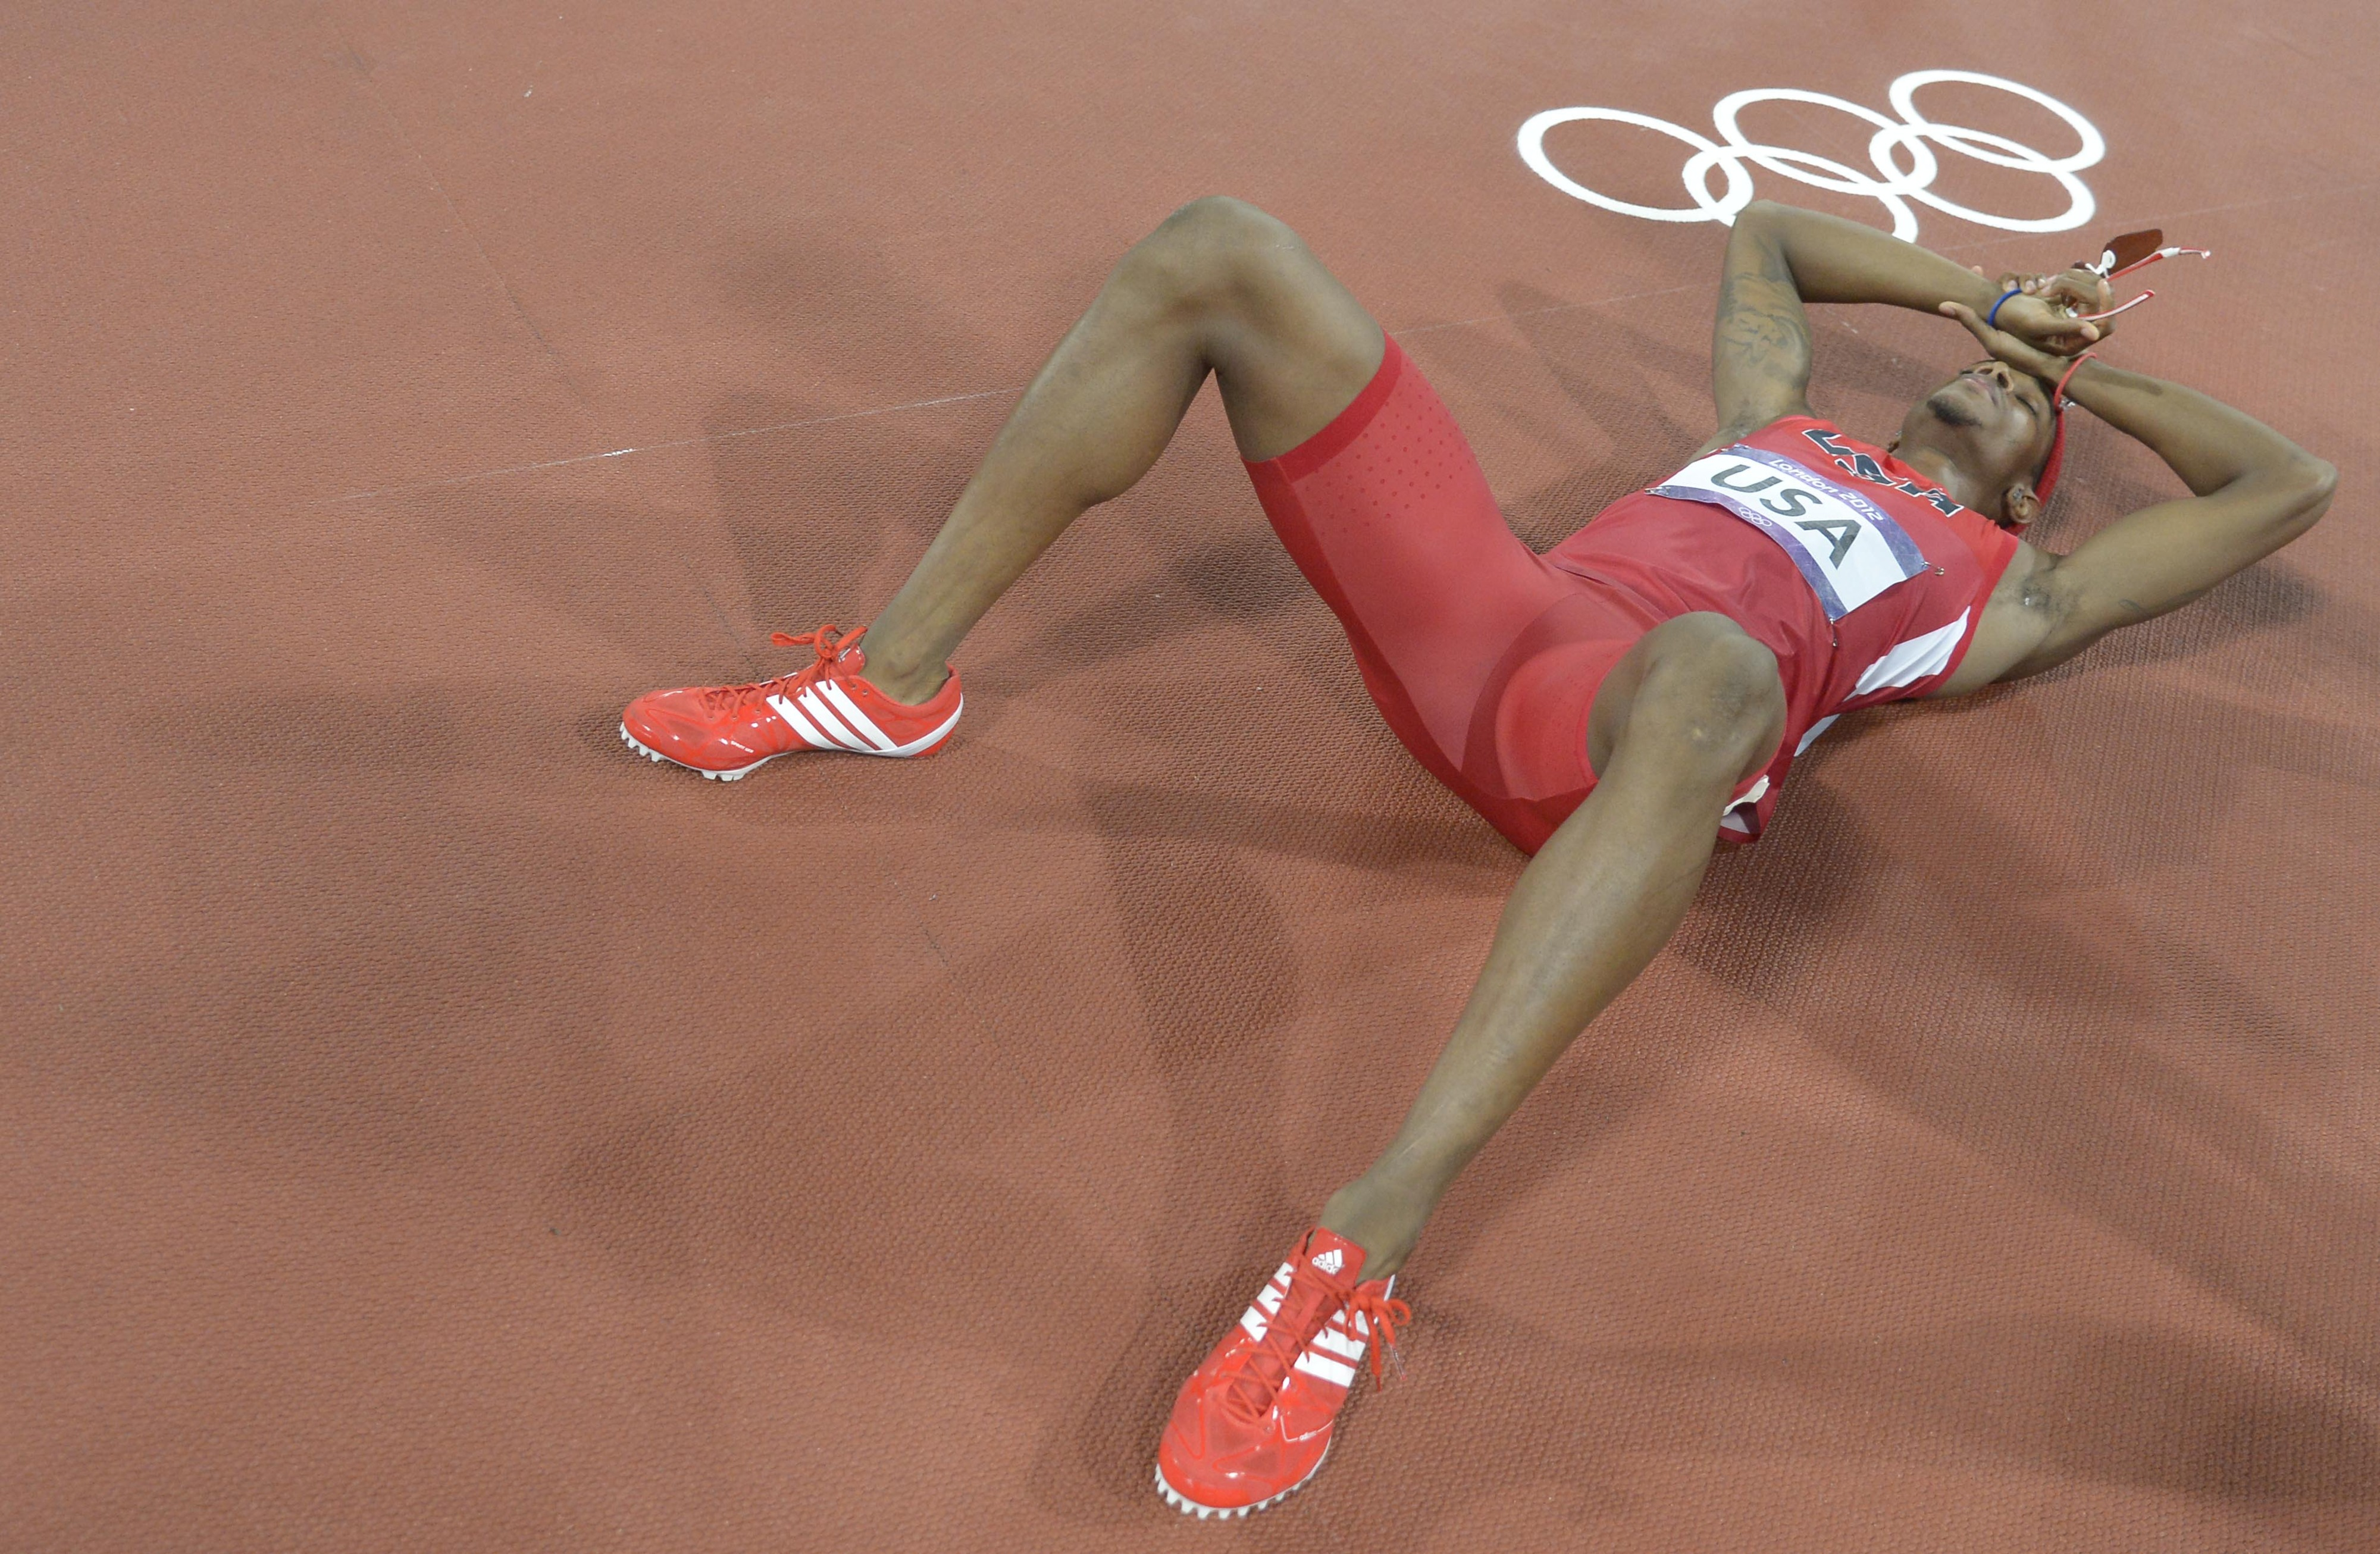 Aug 10, 2012; London, United Kingdom; Tony McQuay (USA) reacts after competing in the men's 4x400m relay final during the London 2012 Olympic Games at Olympic Stadium. Mandatory Credit: Kirby Lee-USA TODAY Sports